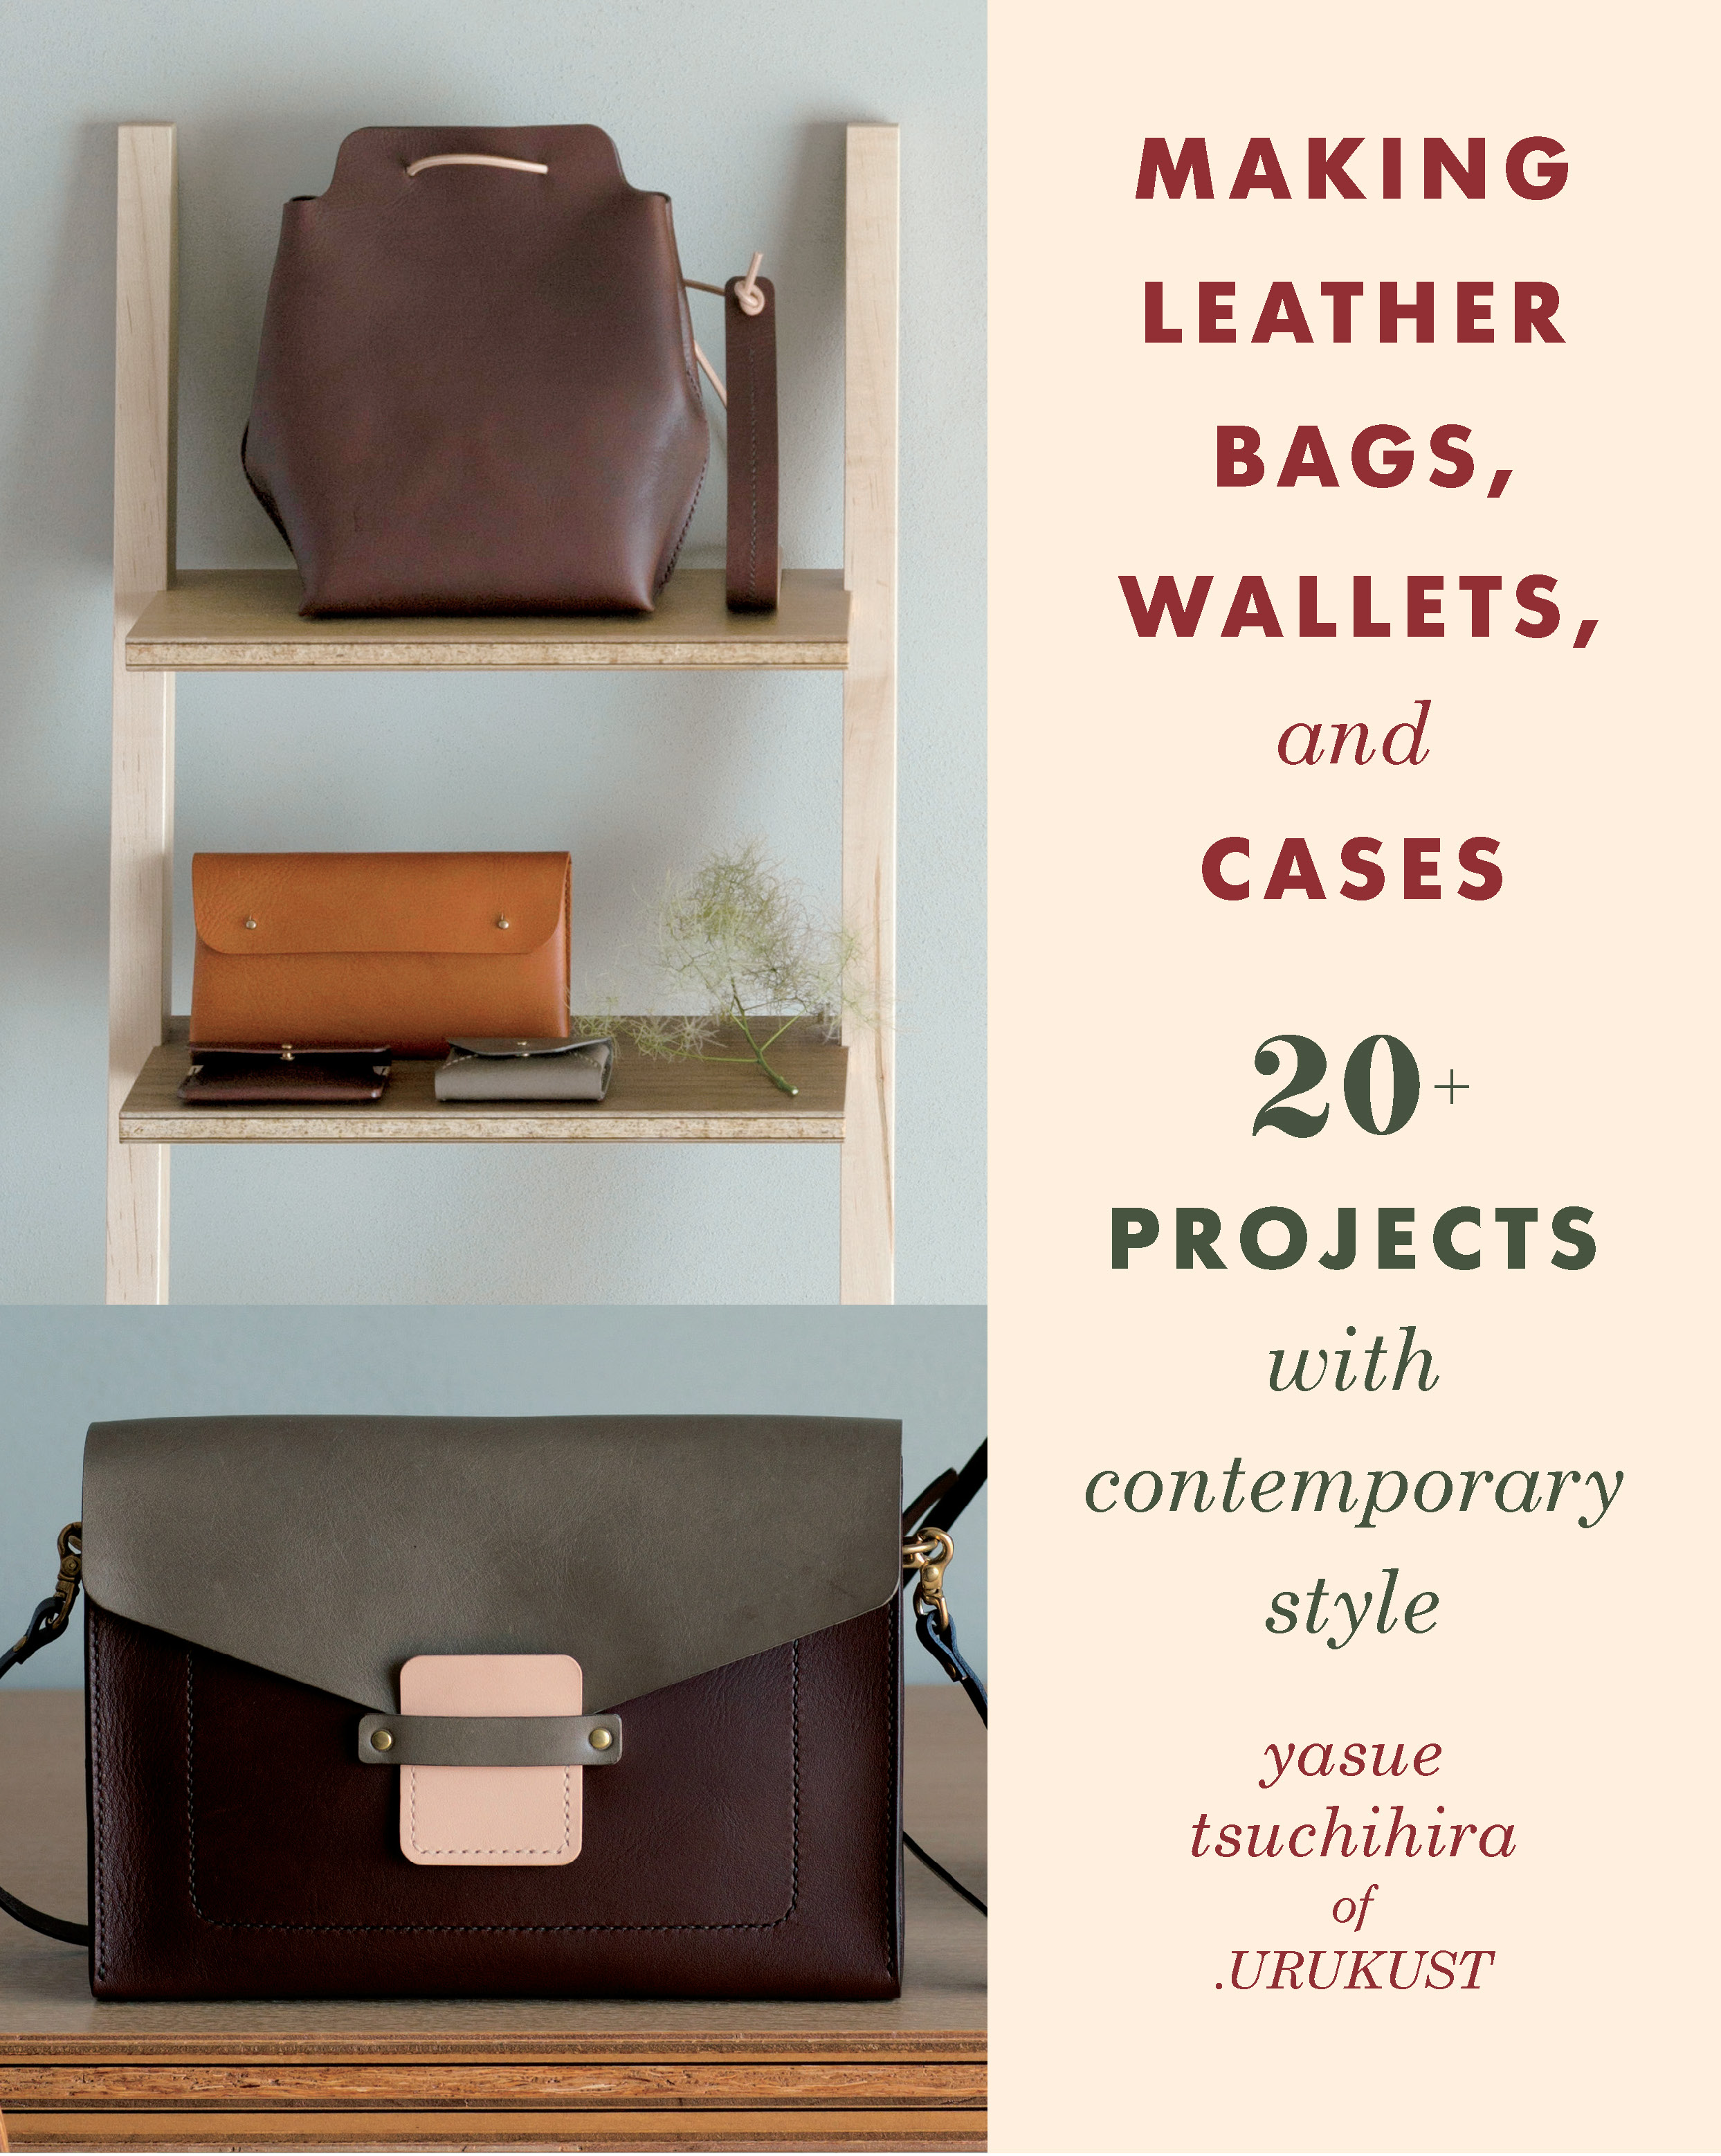 Making Leather Bags, Wallets, and Cases Cover.jpg